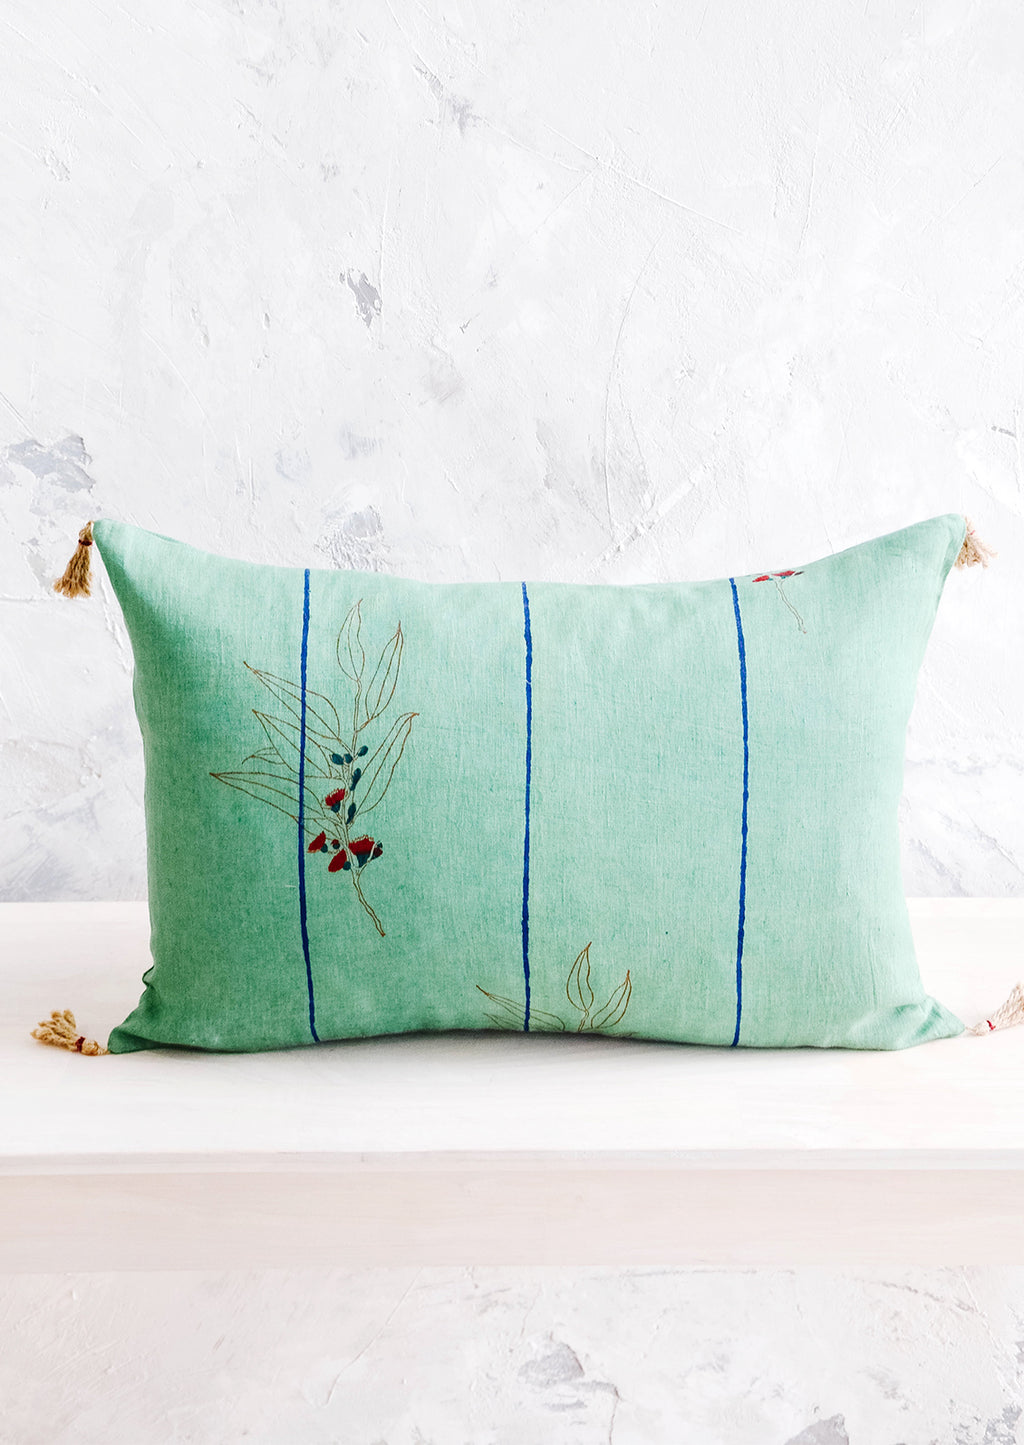 1: Decorative lumbar throw pillow in jade green linen with blue stripes and block printed floral detail